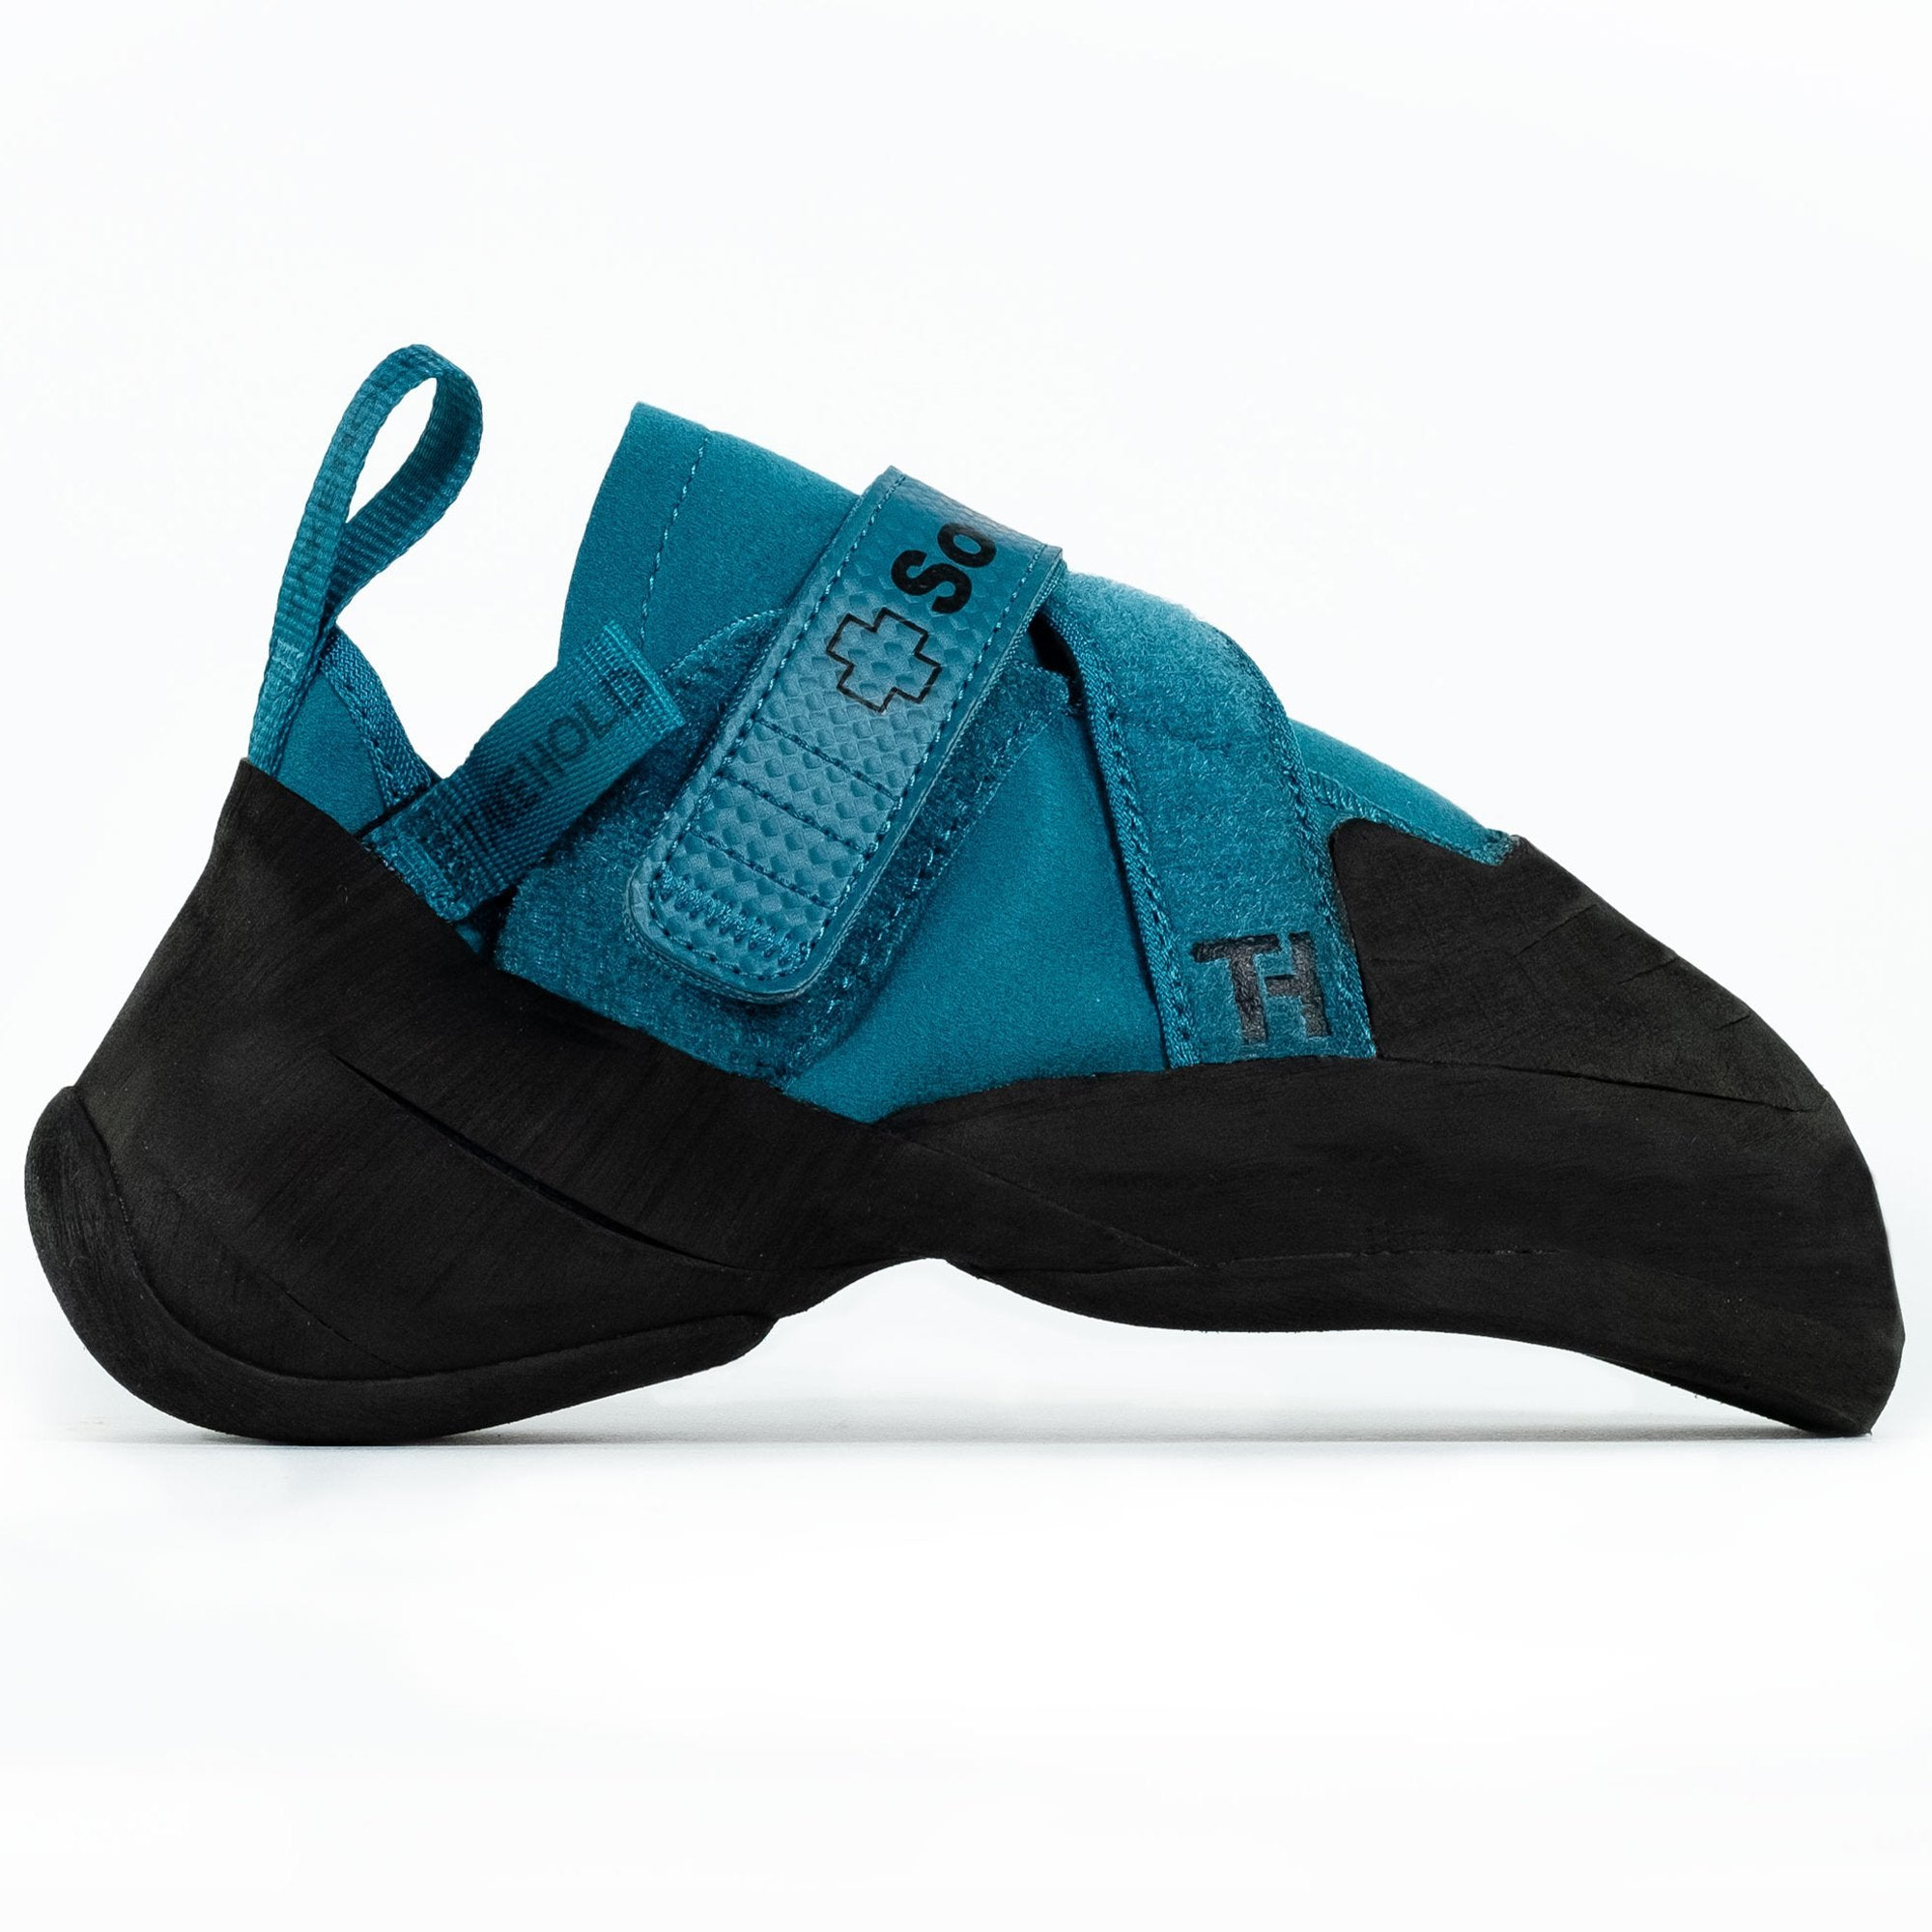 So iLL Free Range Pro Rock Climbing Shoe in Blue Spruce – Side View